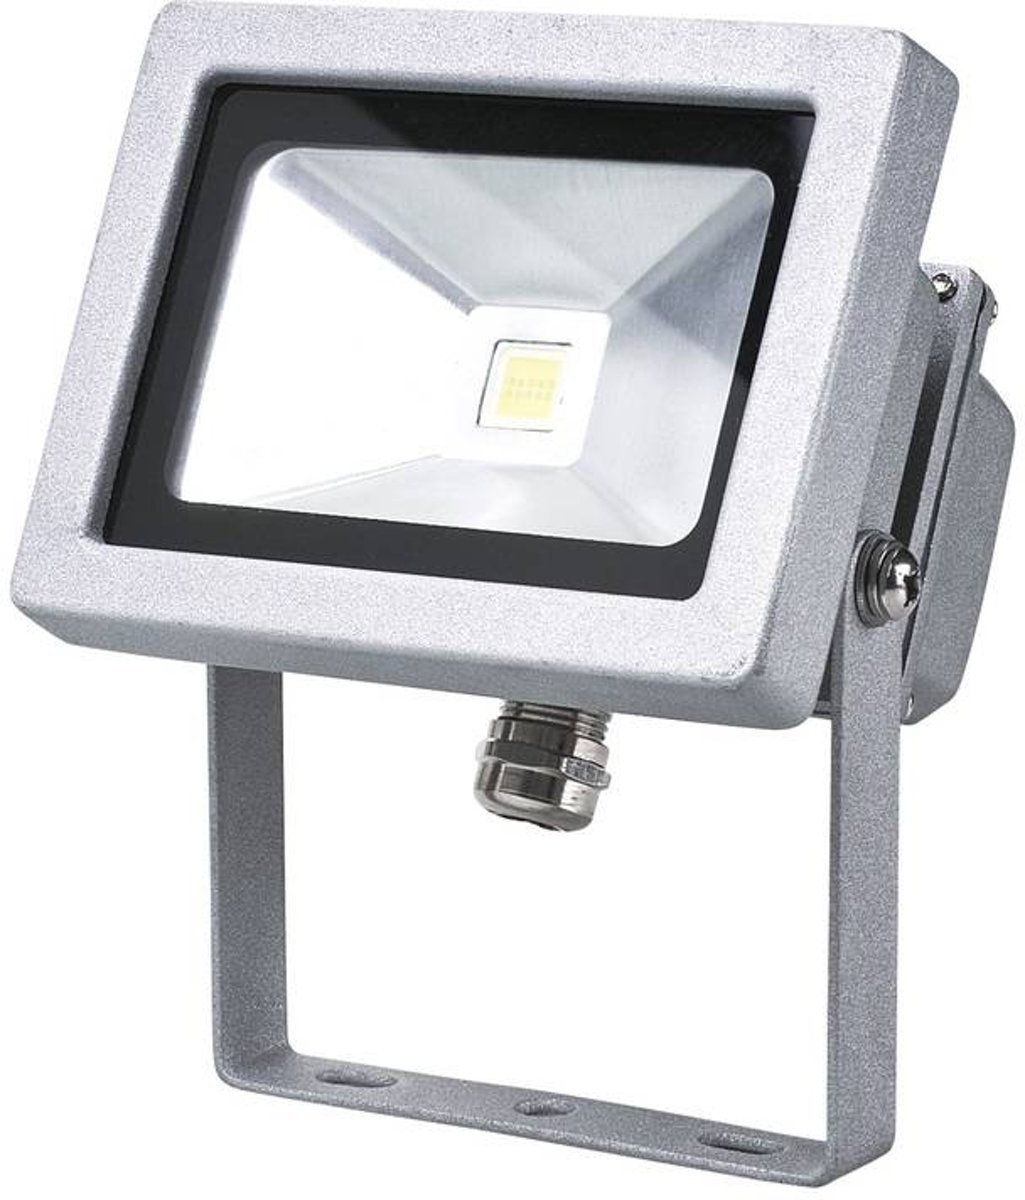 Inrit Verlichting Bol Led Lamp Straler 10 W Floodlight Buitenlamp Ip65 6400k